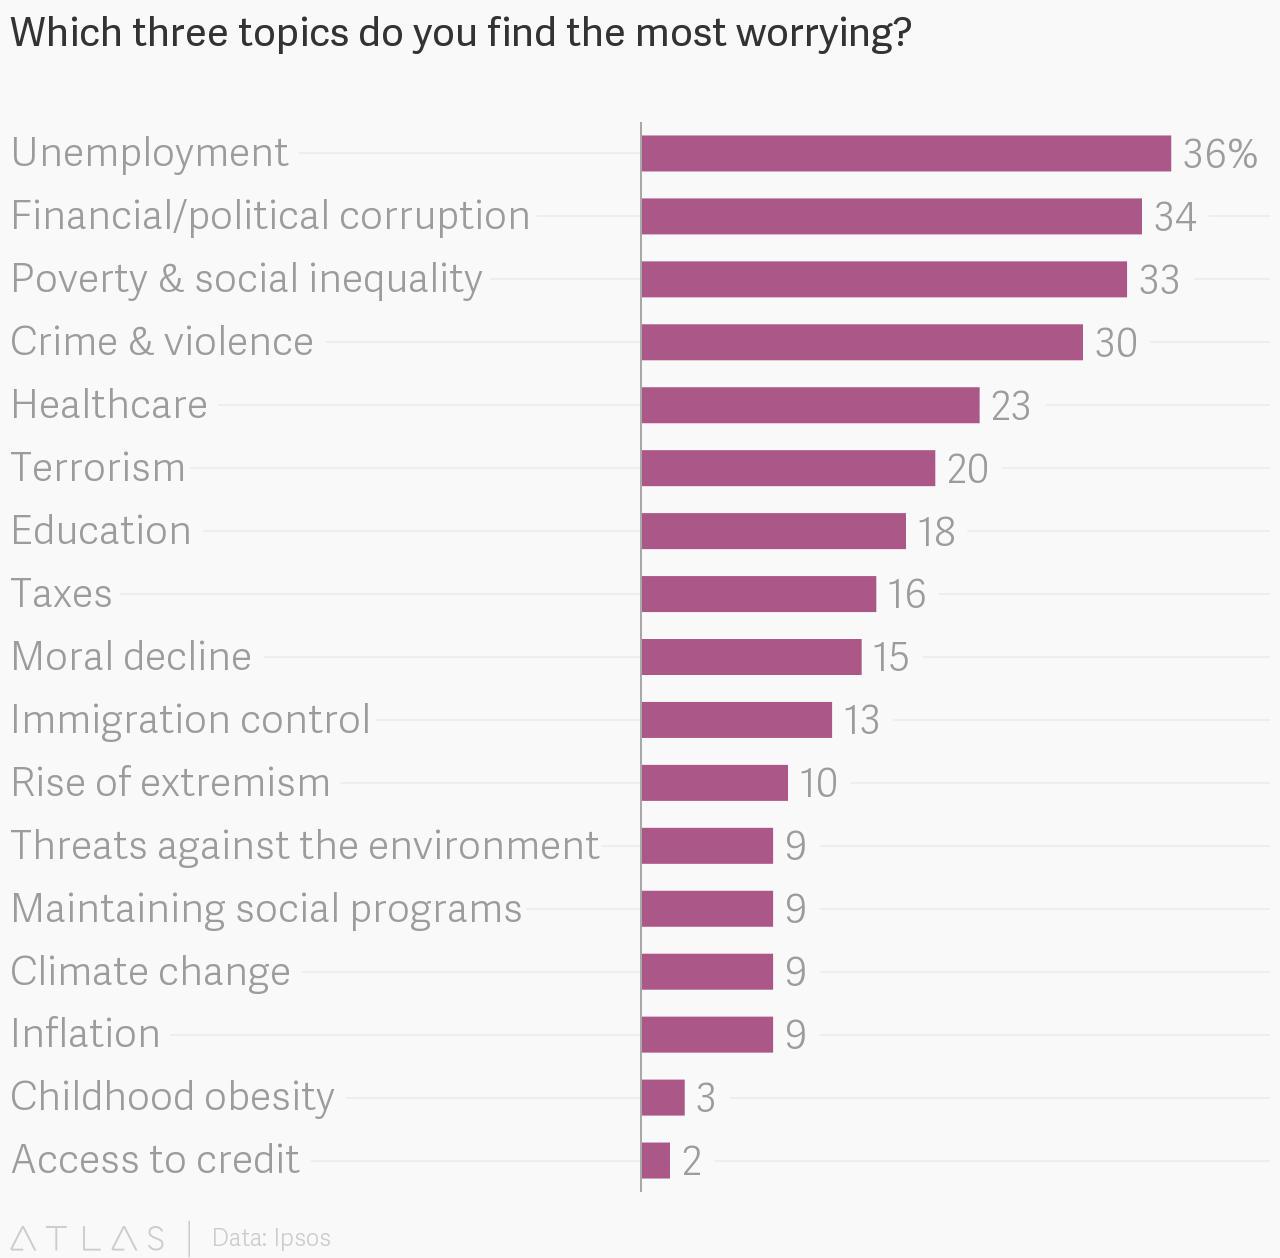 Which three topics do you find the most worrying